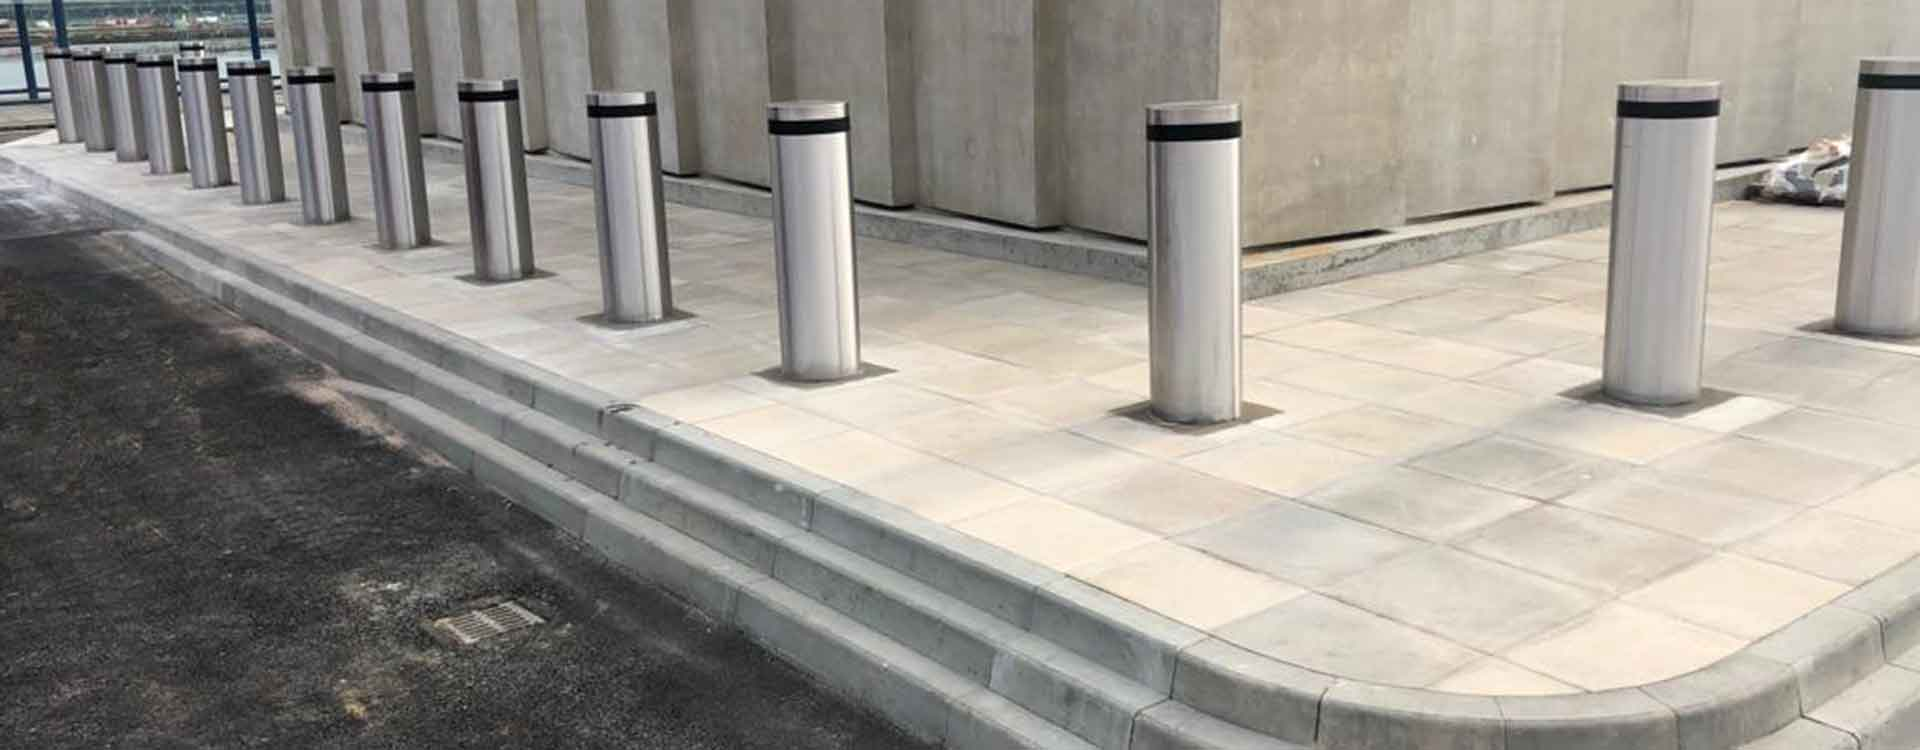 Anti terrorist bollards installed at London City Airport